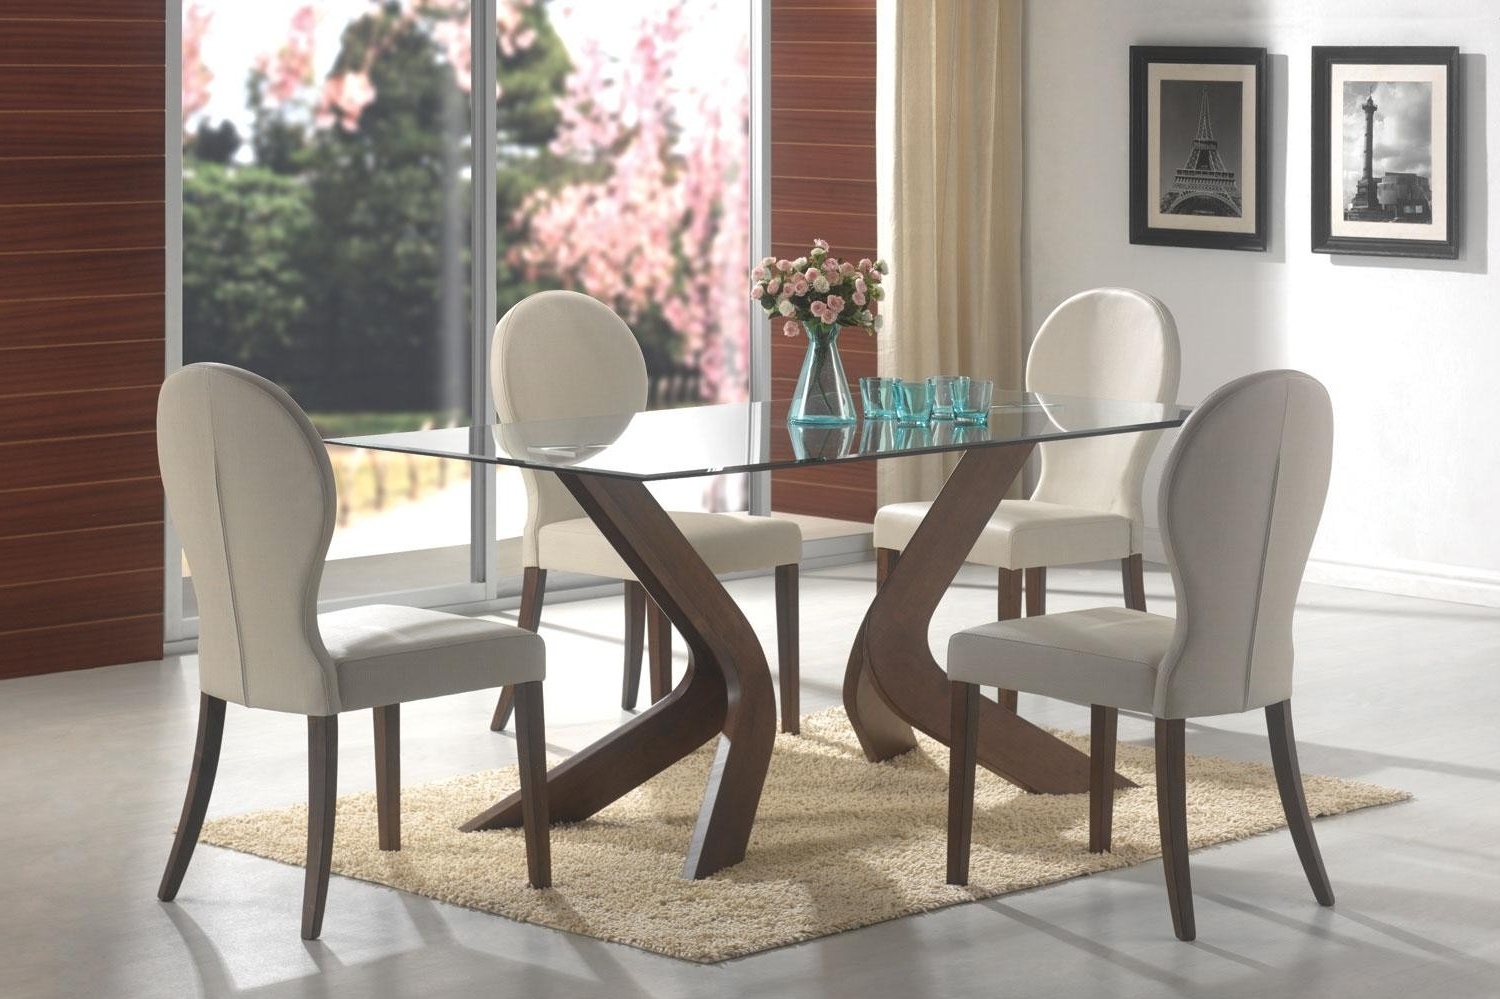 2017 Glass Dining Tables In 3 Essential Considerations When Choosing Glass Dining Room Table (Gallery 6 of 25)